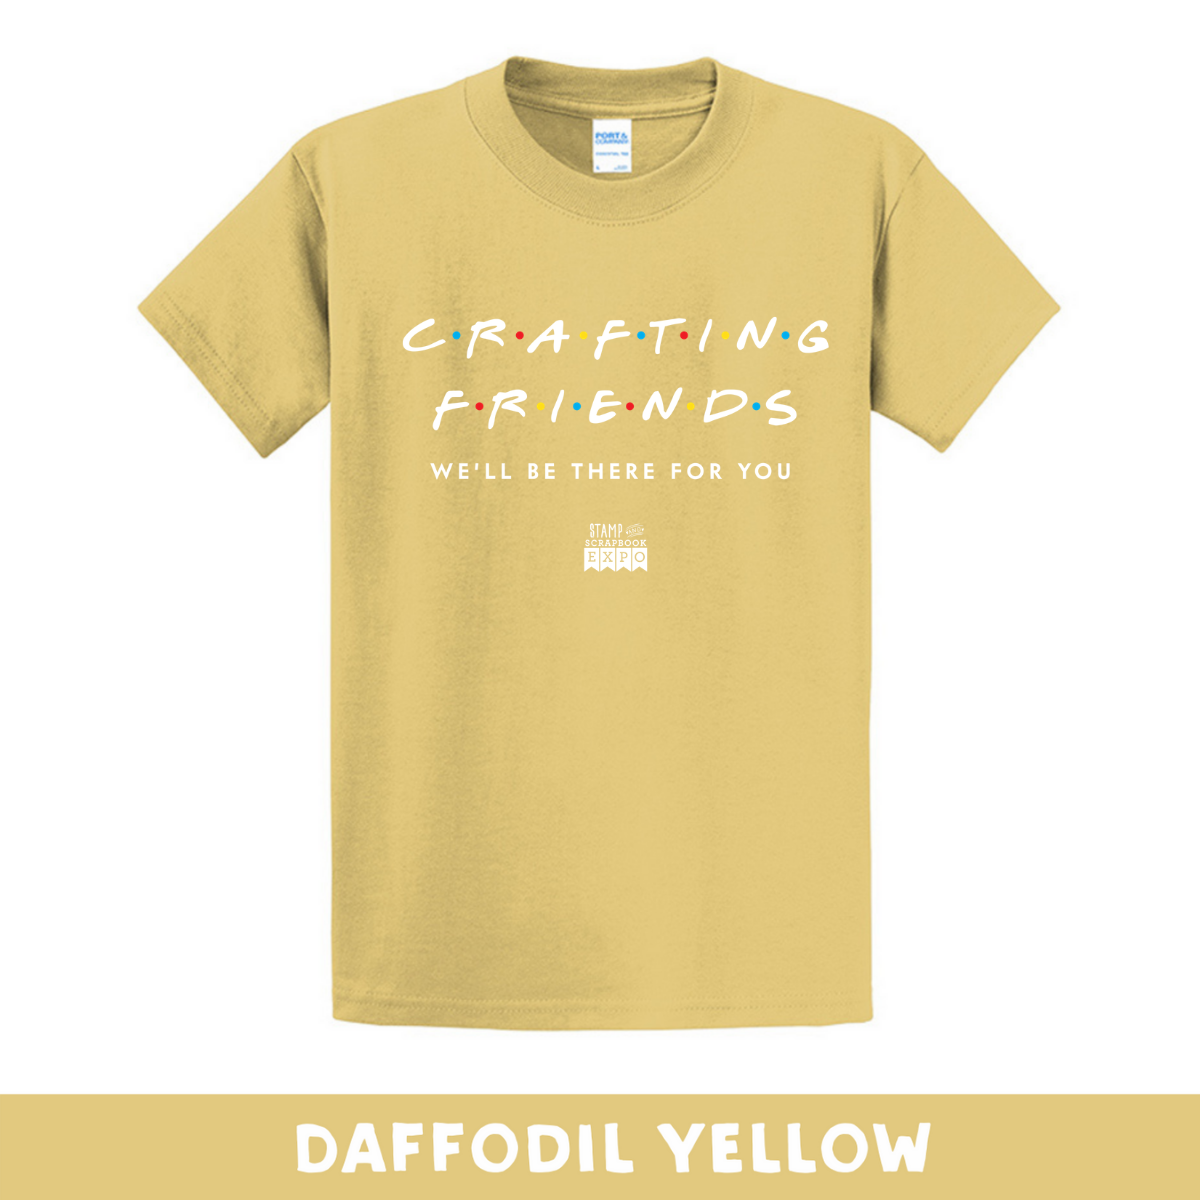 Daffodil Yellow - Crew Neck Unisex T-Shirt - Crafting Friends